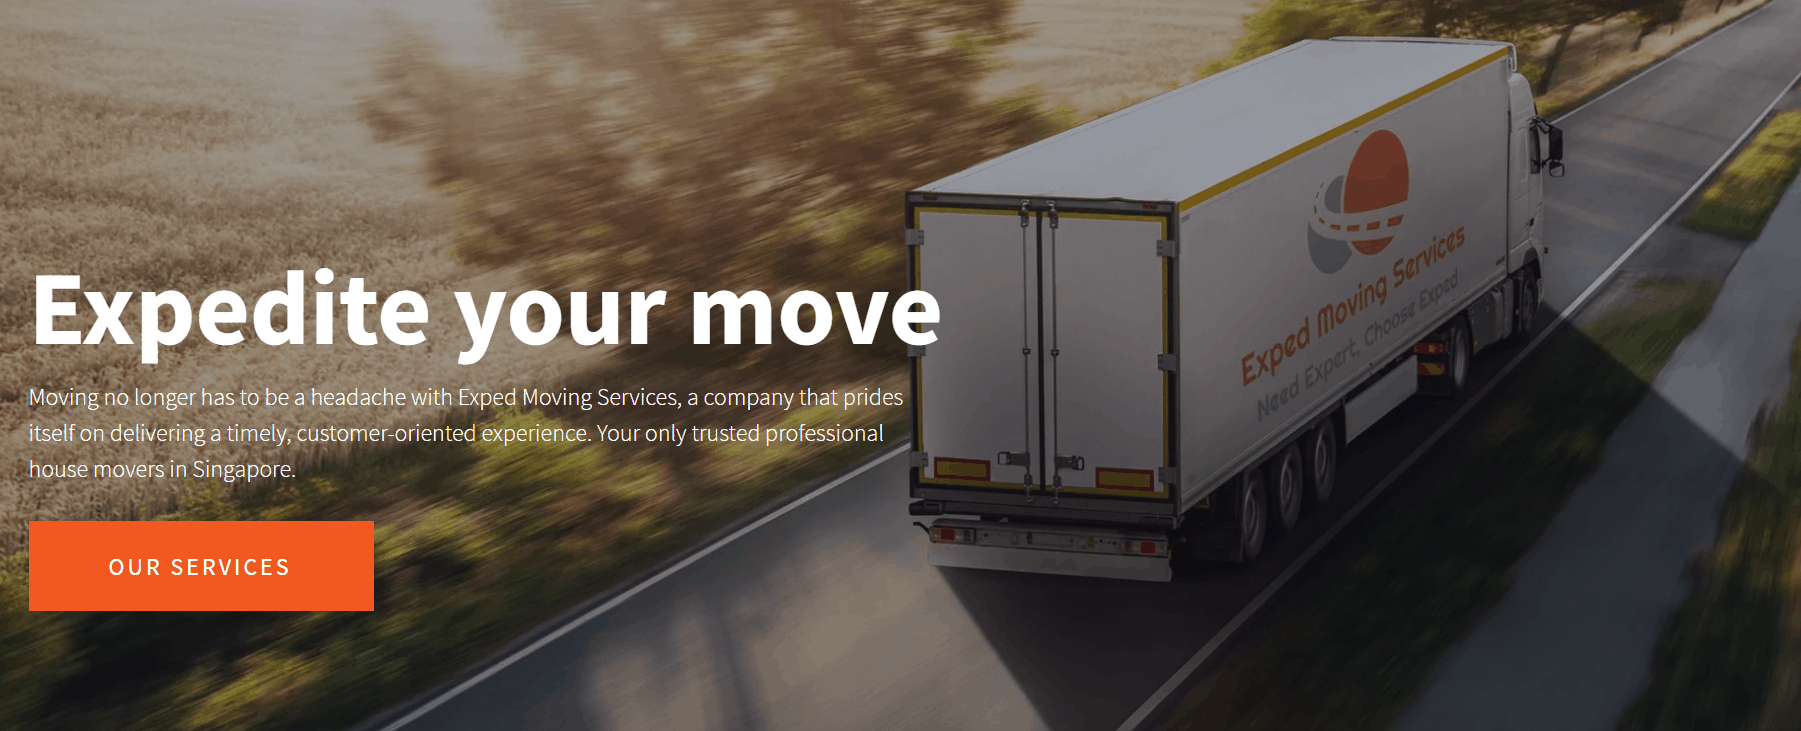 Exped Moving Services Movers Singapore - A Review of 10 Most Popular Moving, Singapore Mover Company Review, Reliable professional careful movers in Singapore